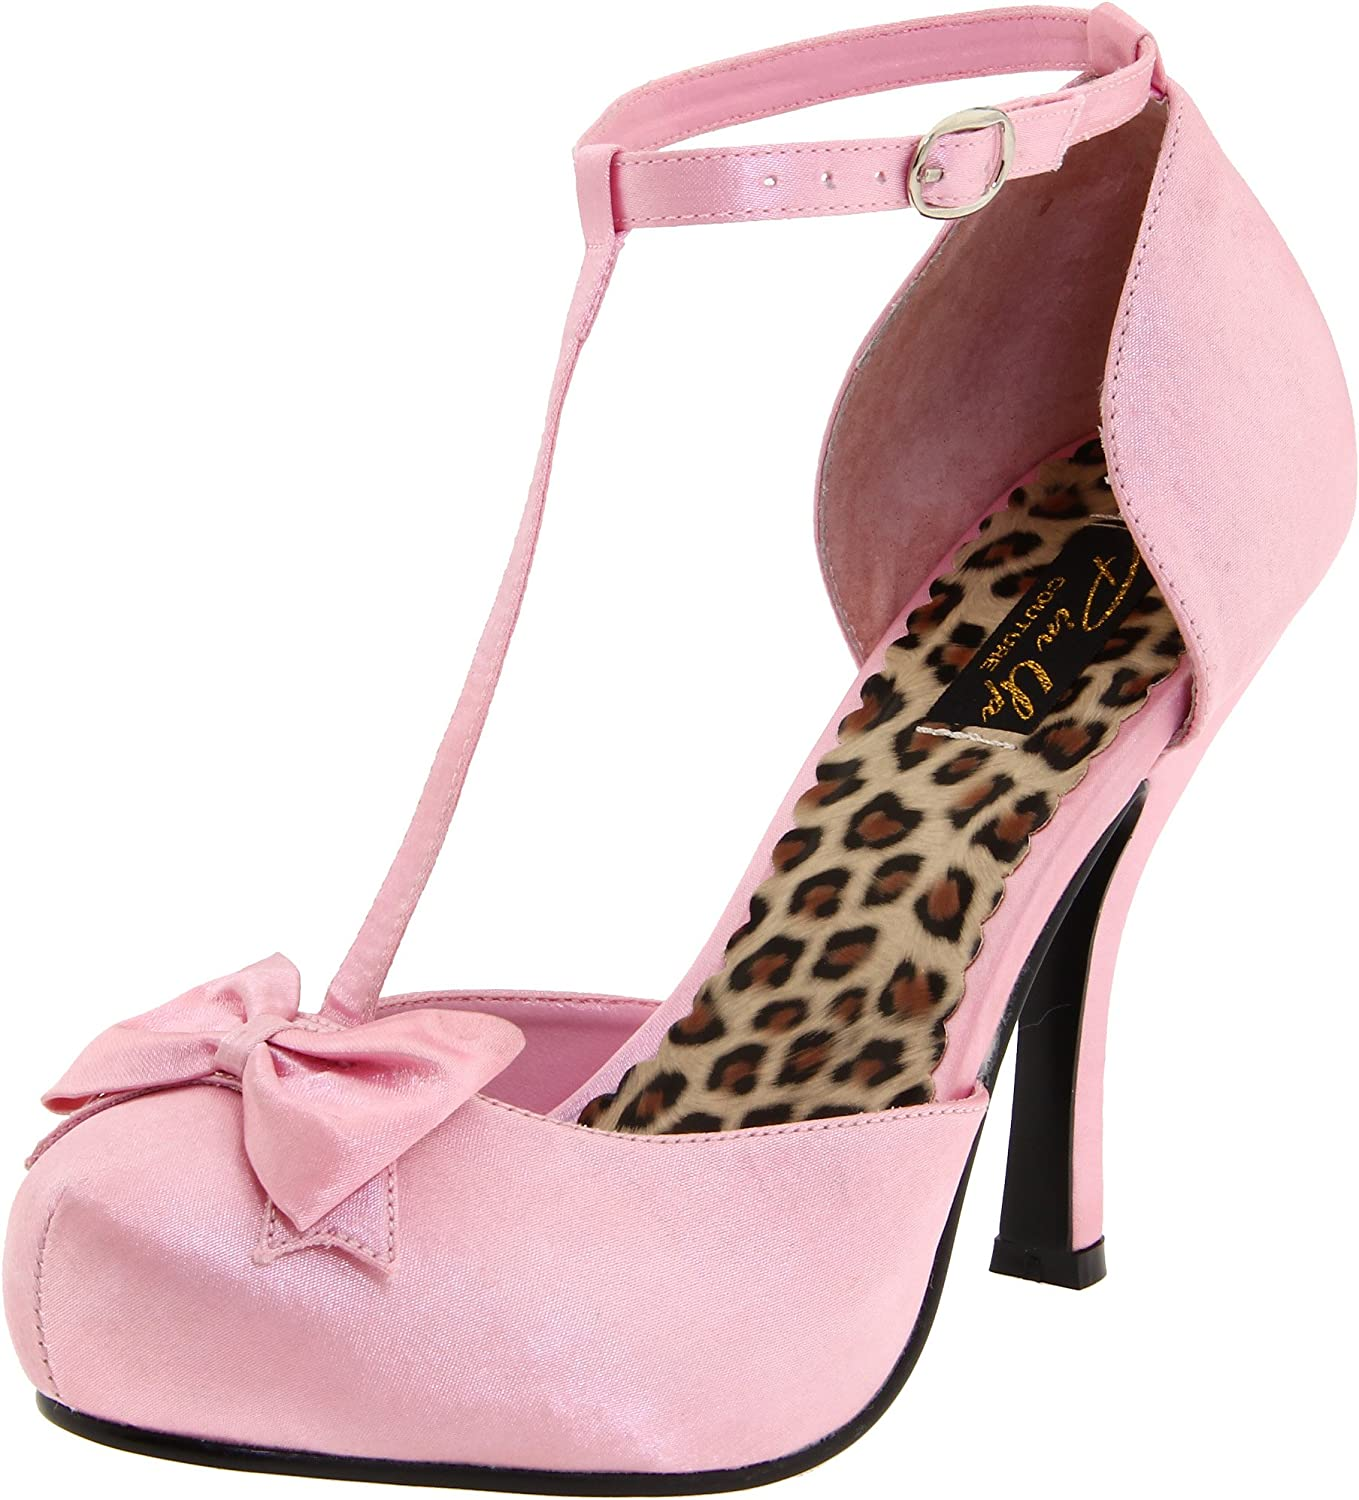 Pleaser Women's Cutiepie-12 BP Platform Pump